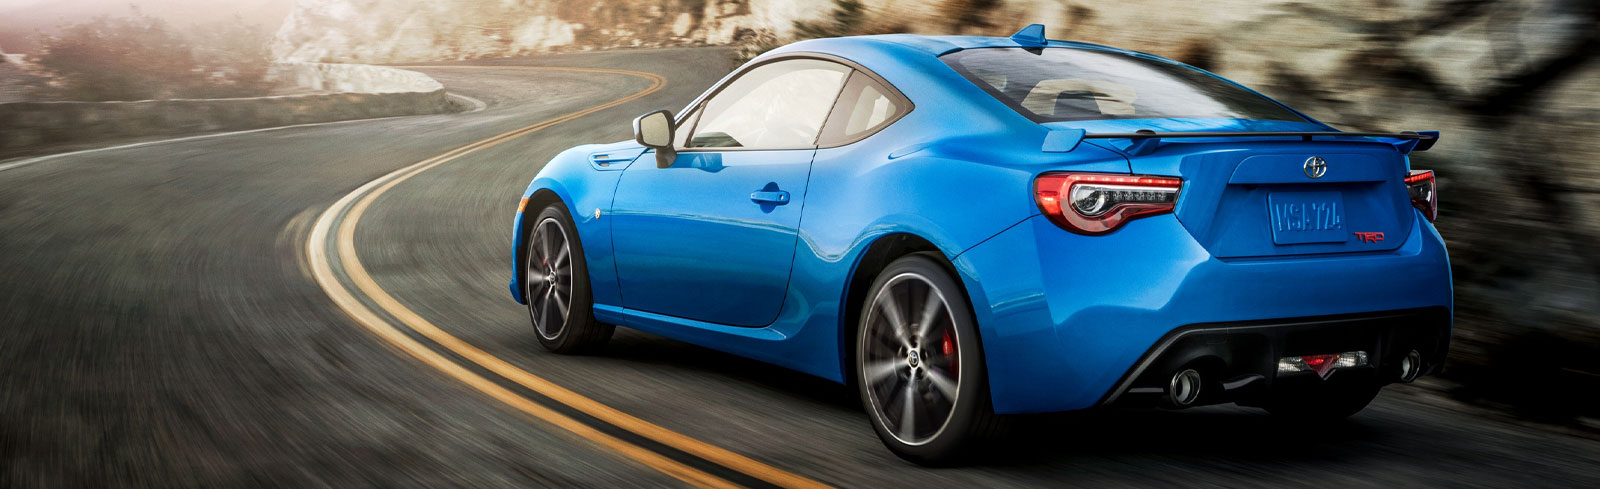 2020 Toyota 86 Sports Car in Cleveland, OH, at Motorcars Toyota